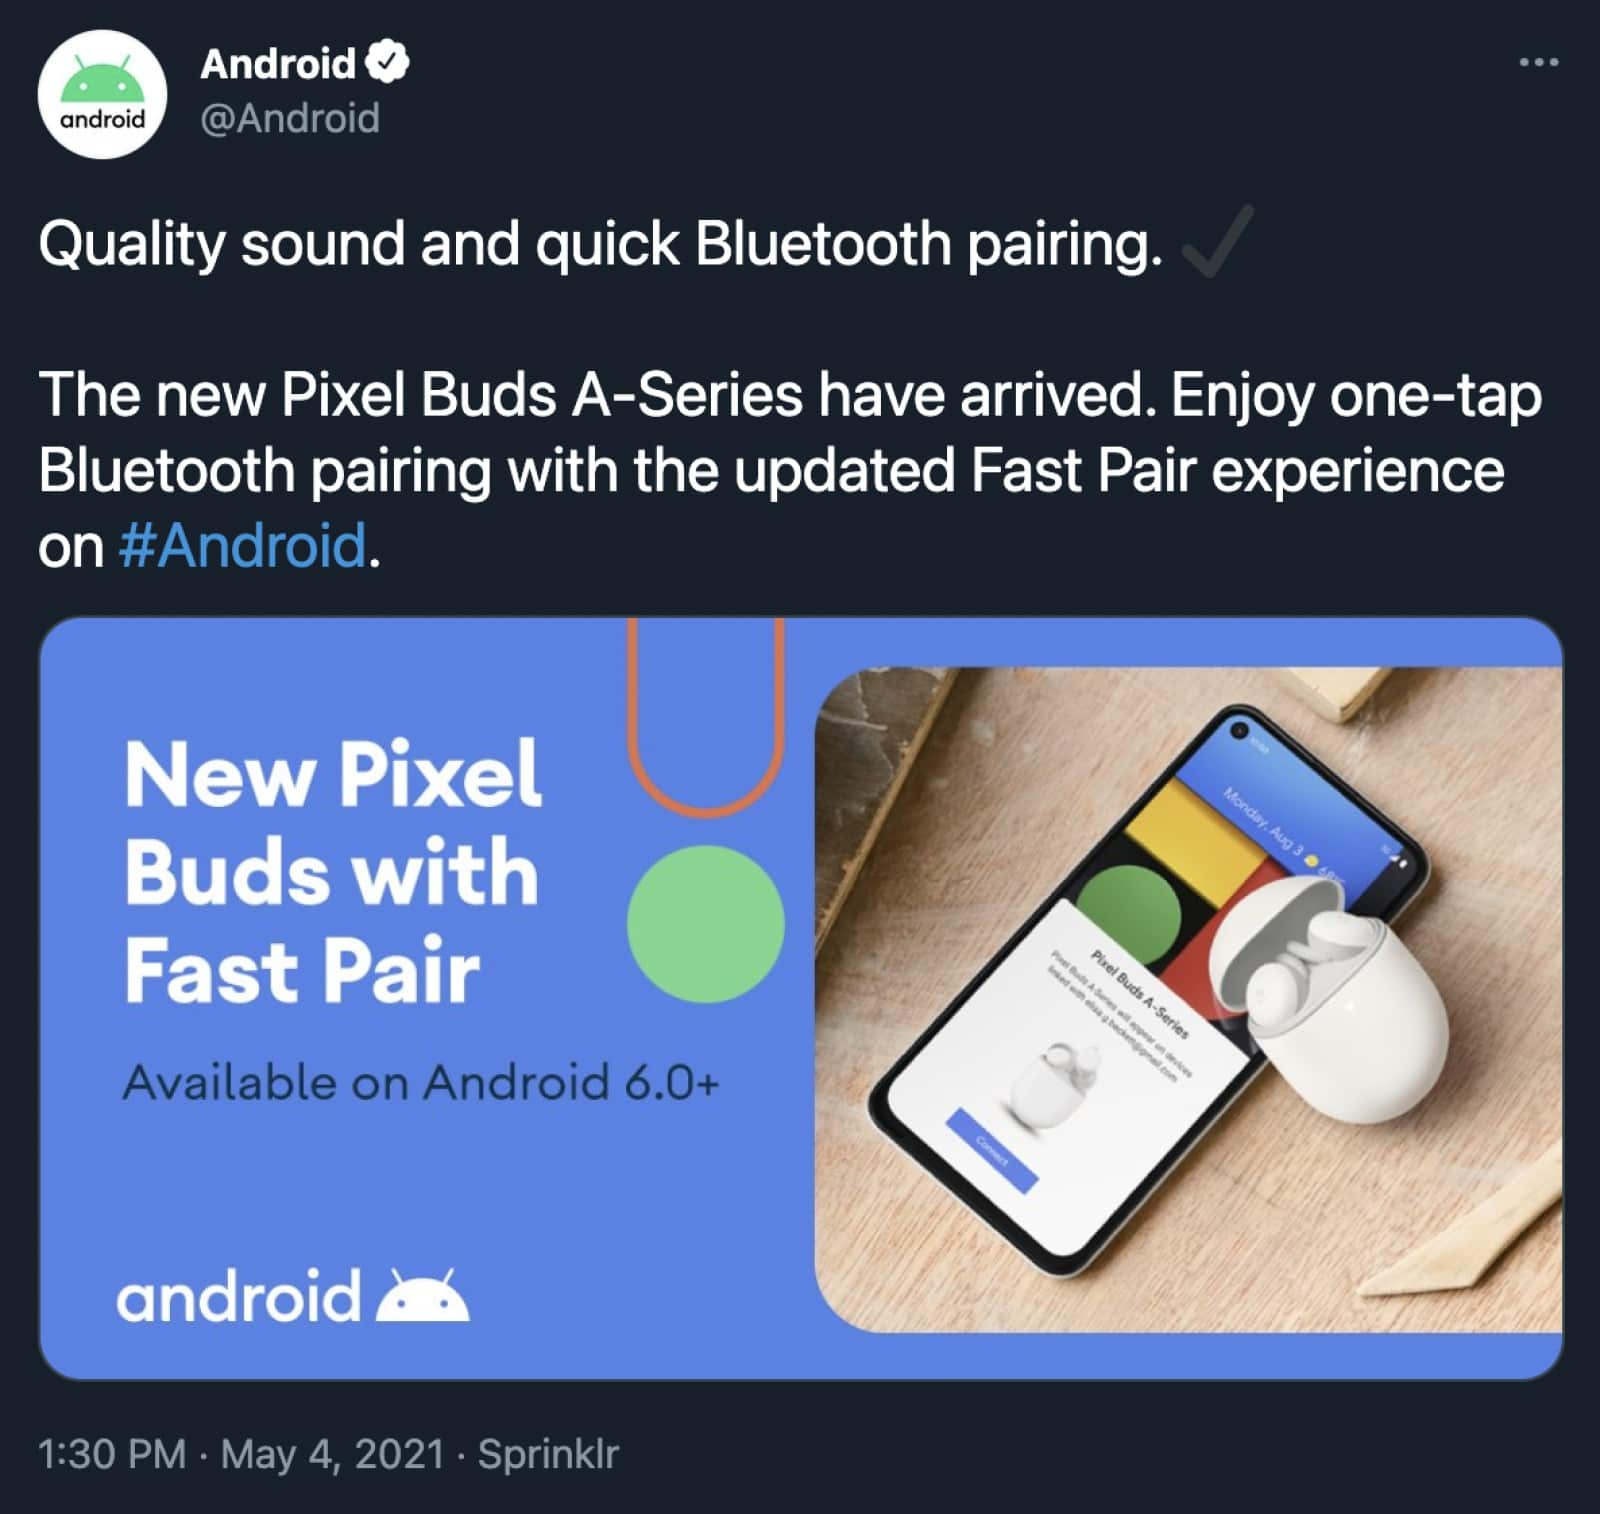 android twitter account now-deleted tweet showing the pixel buds a-series